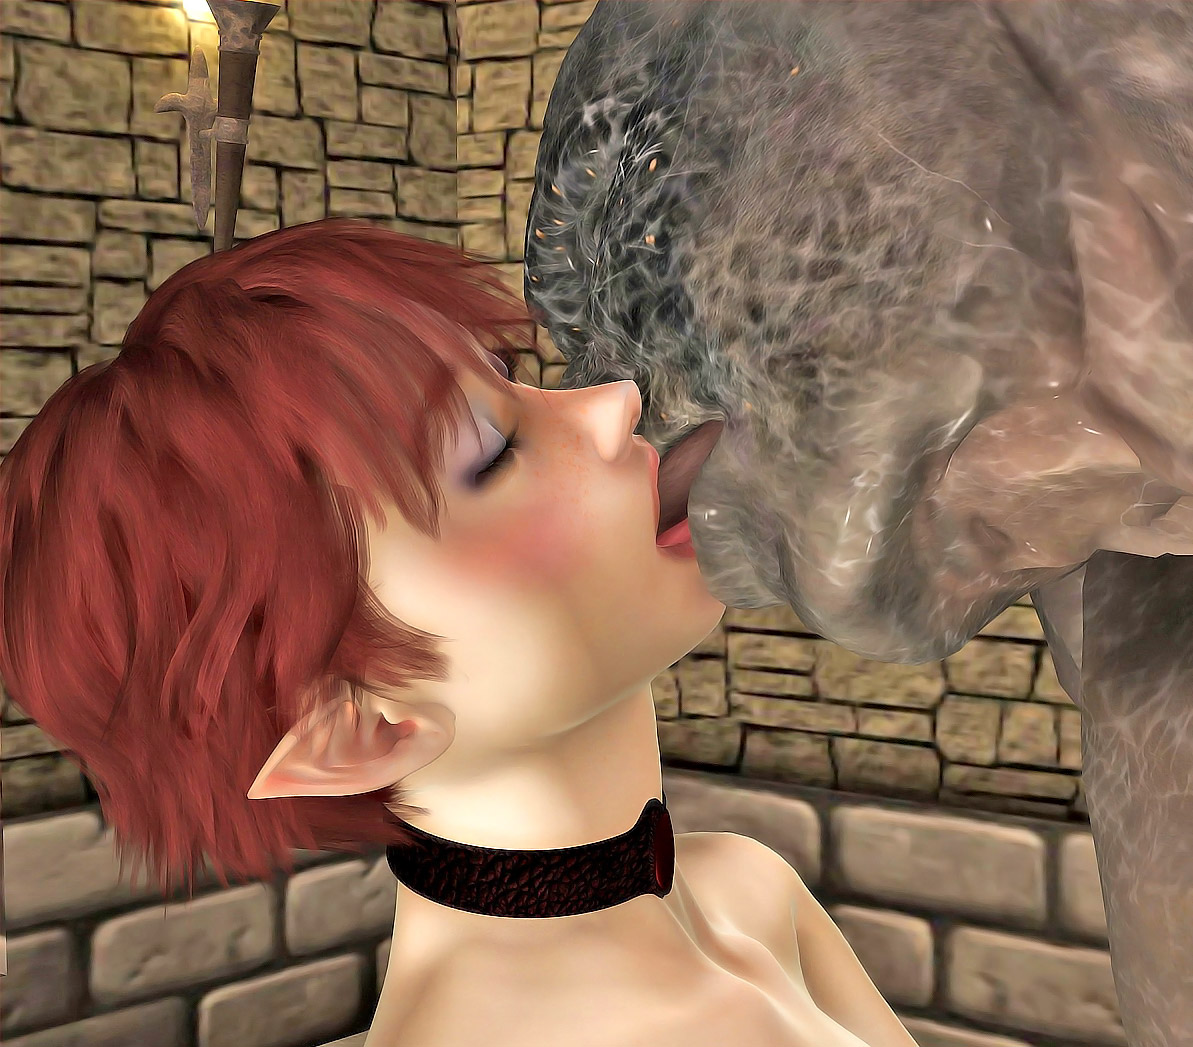 Elf demon girl being fucked by prince hentai amature woman